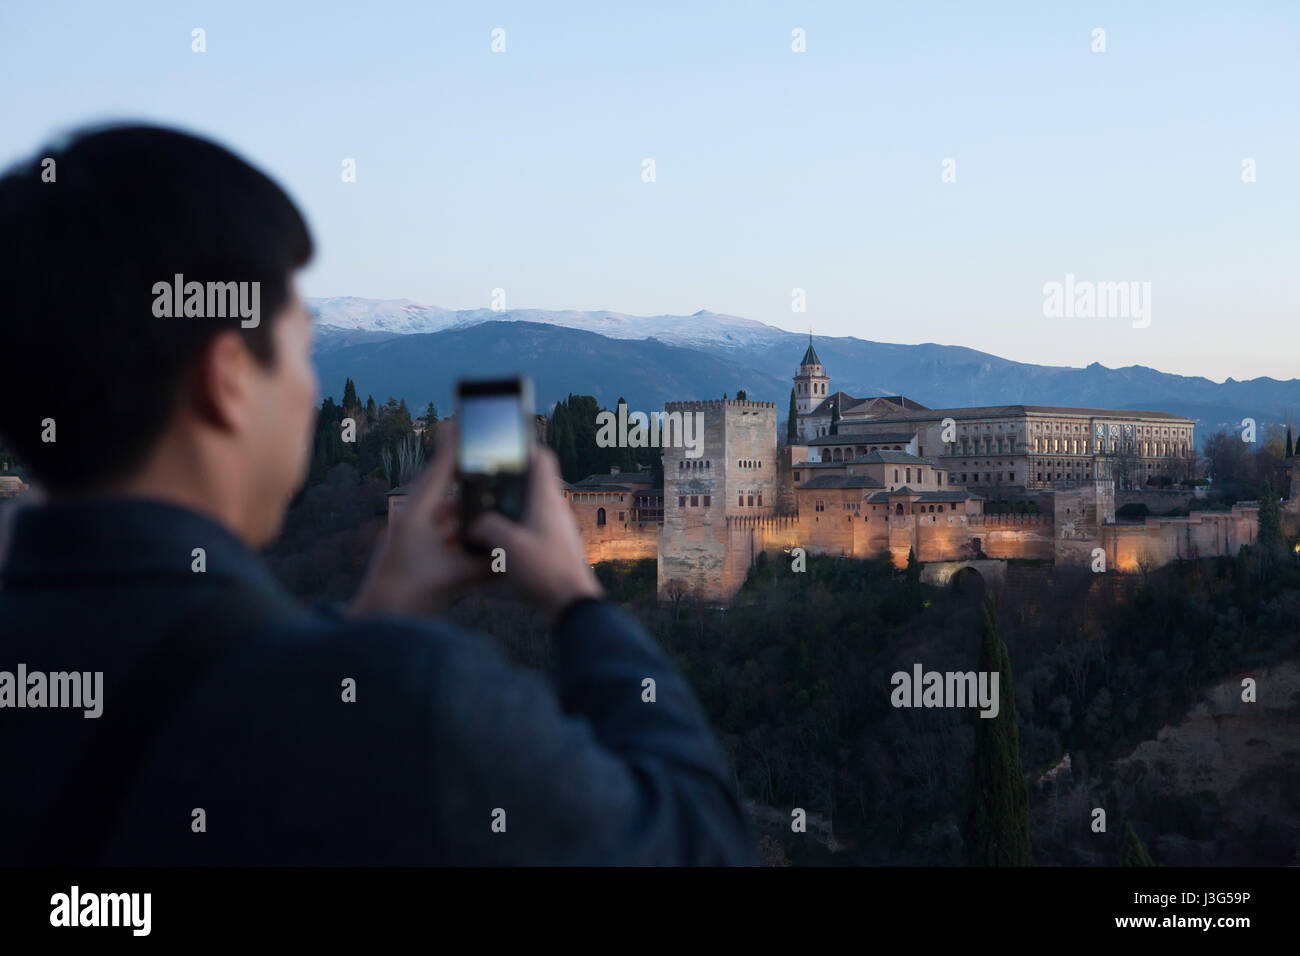 Asian tourist uses his smartphone to photograph the Alhambra Palace from the Mirador de San Nicolas in El Albayzin Stock Photo